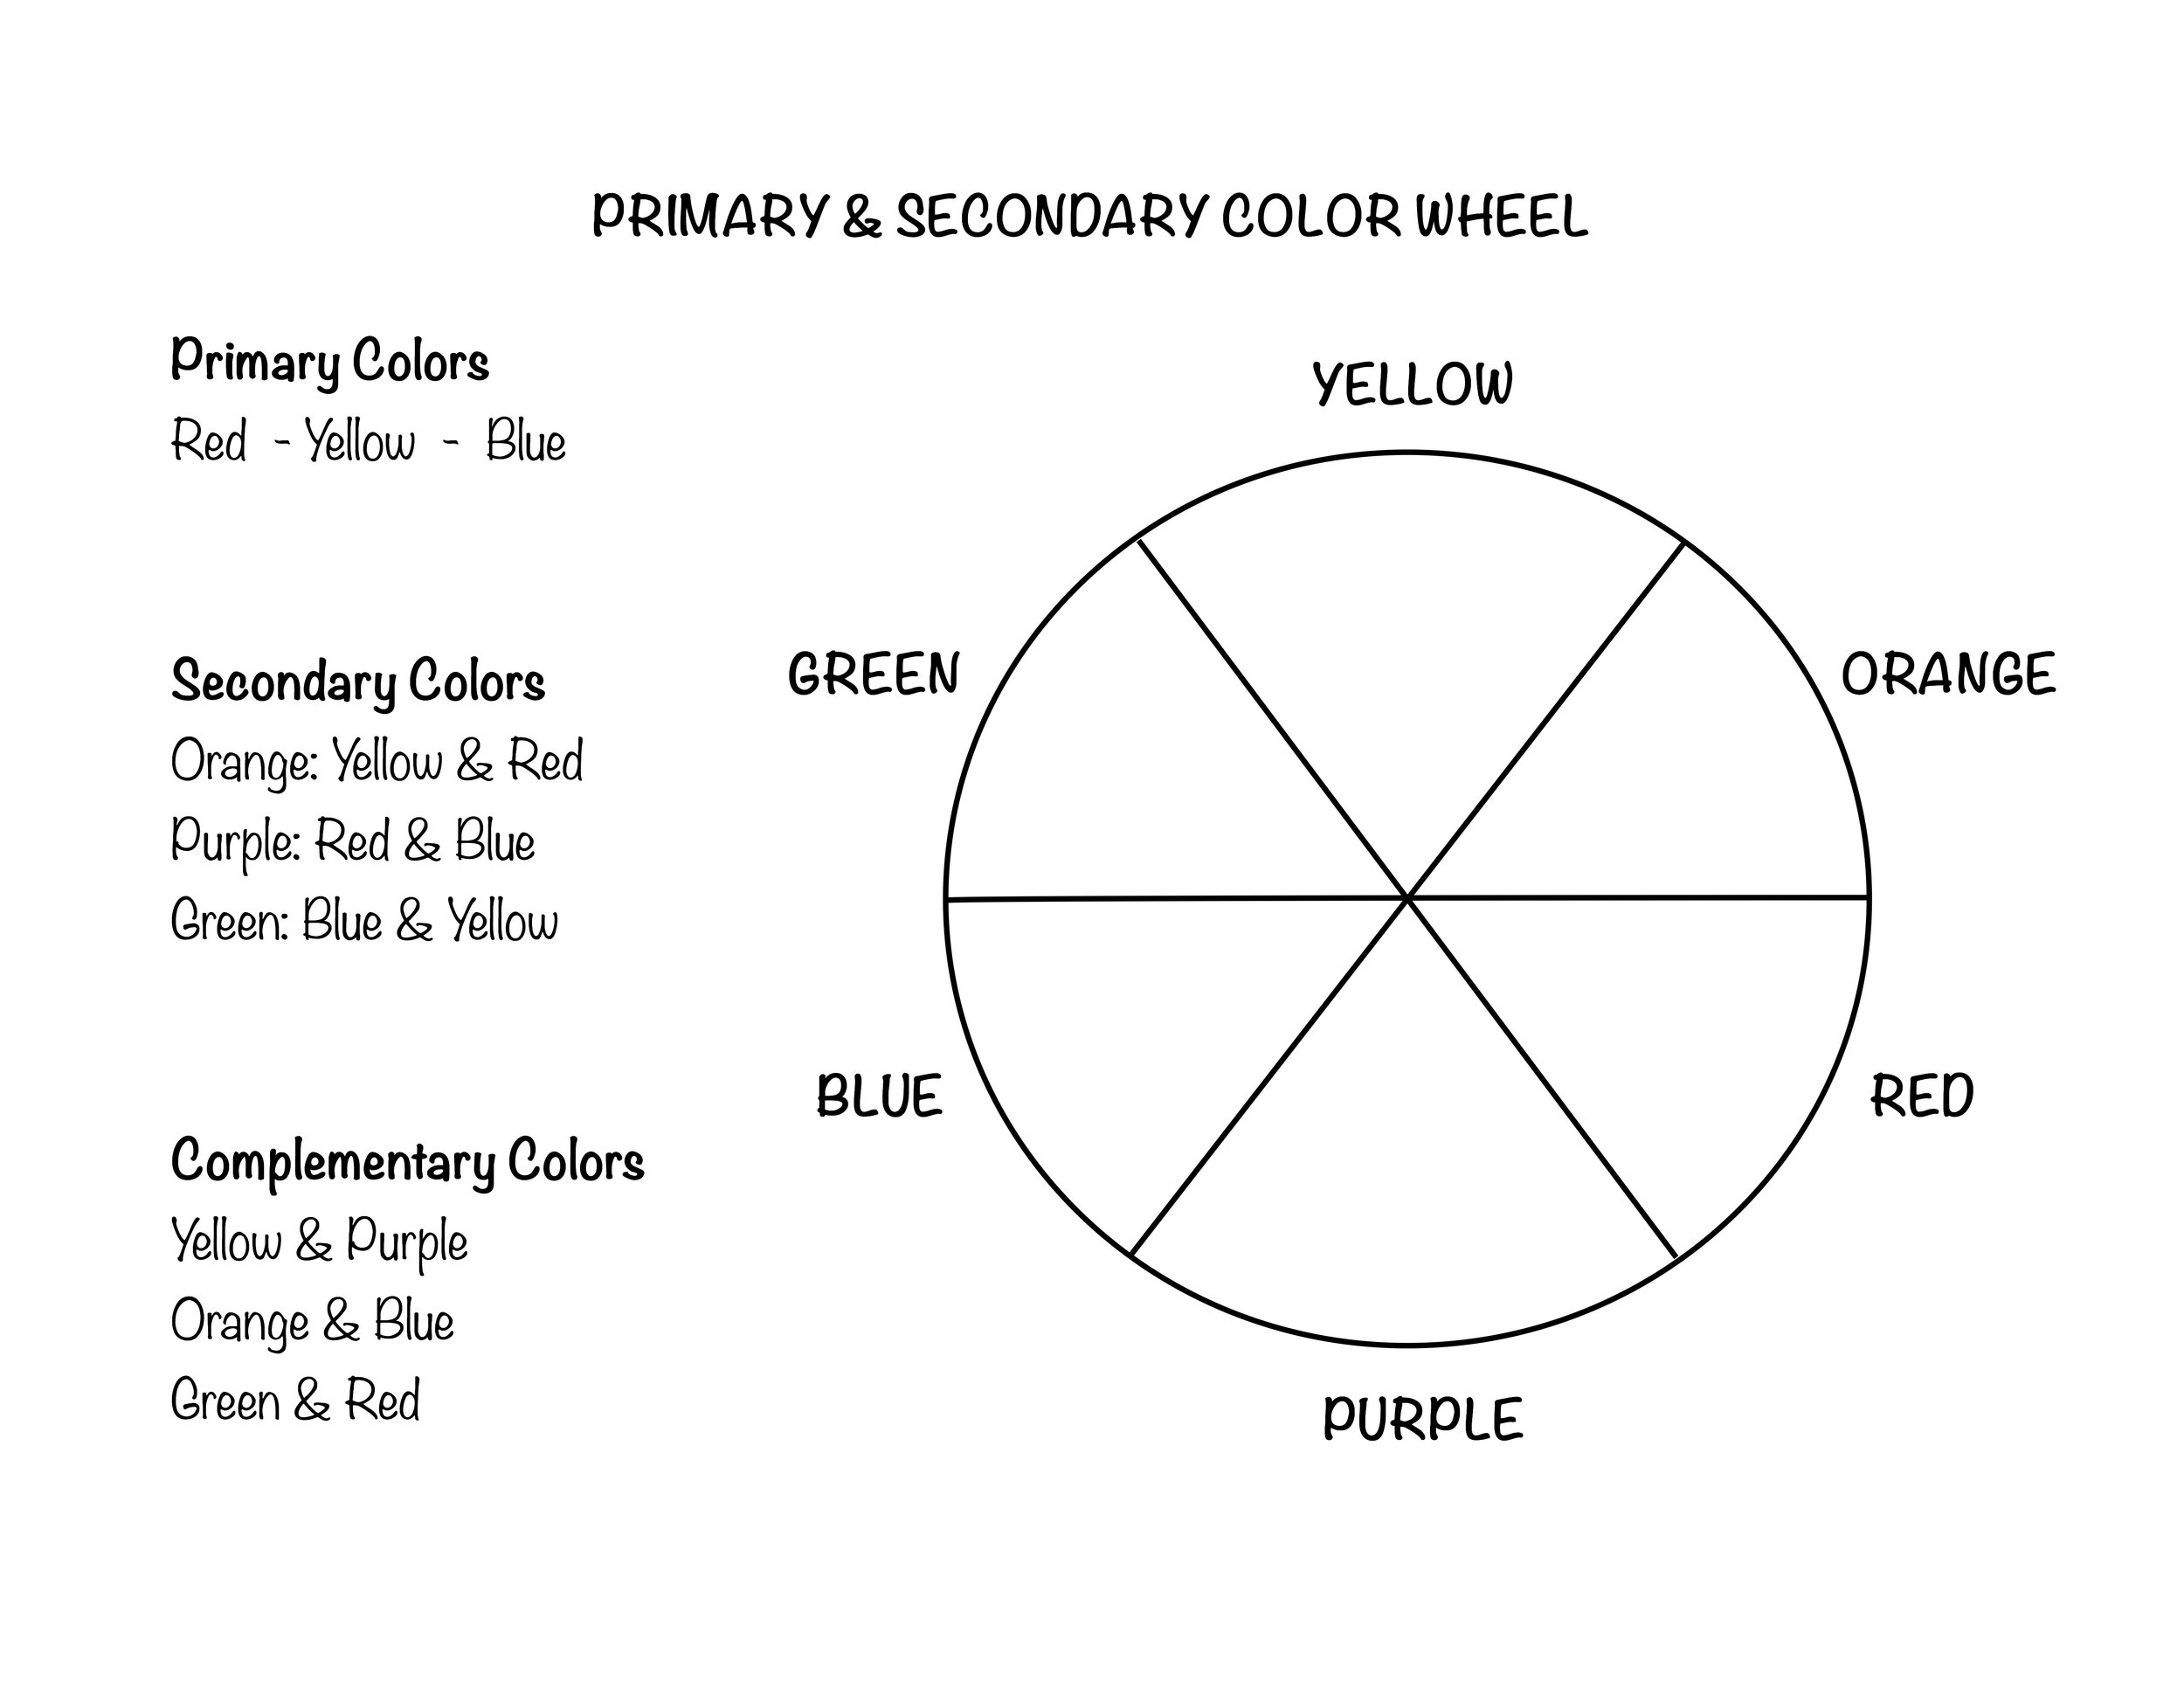 PRIMARY & SECONDARY COLOR WHEELS.jpg